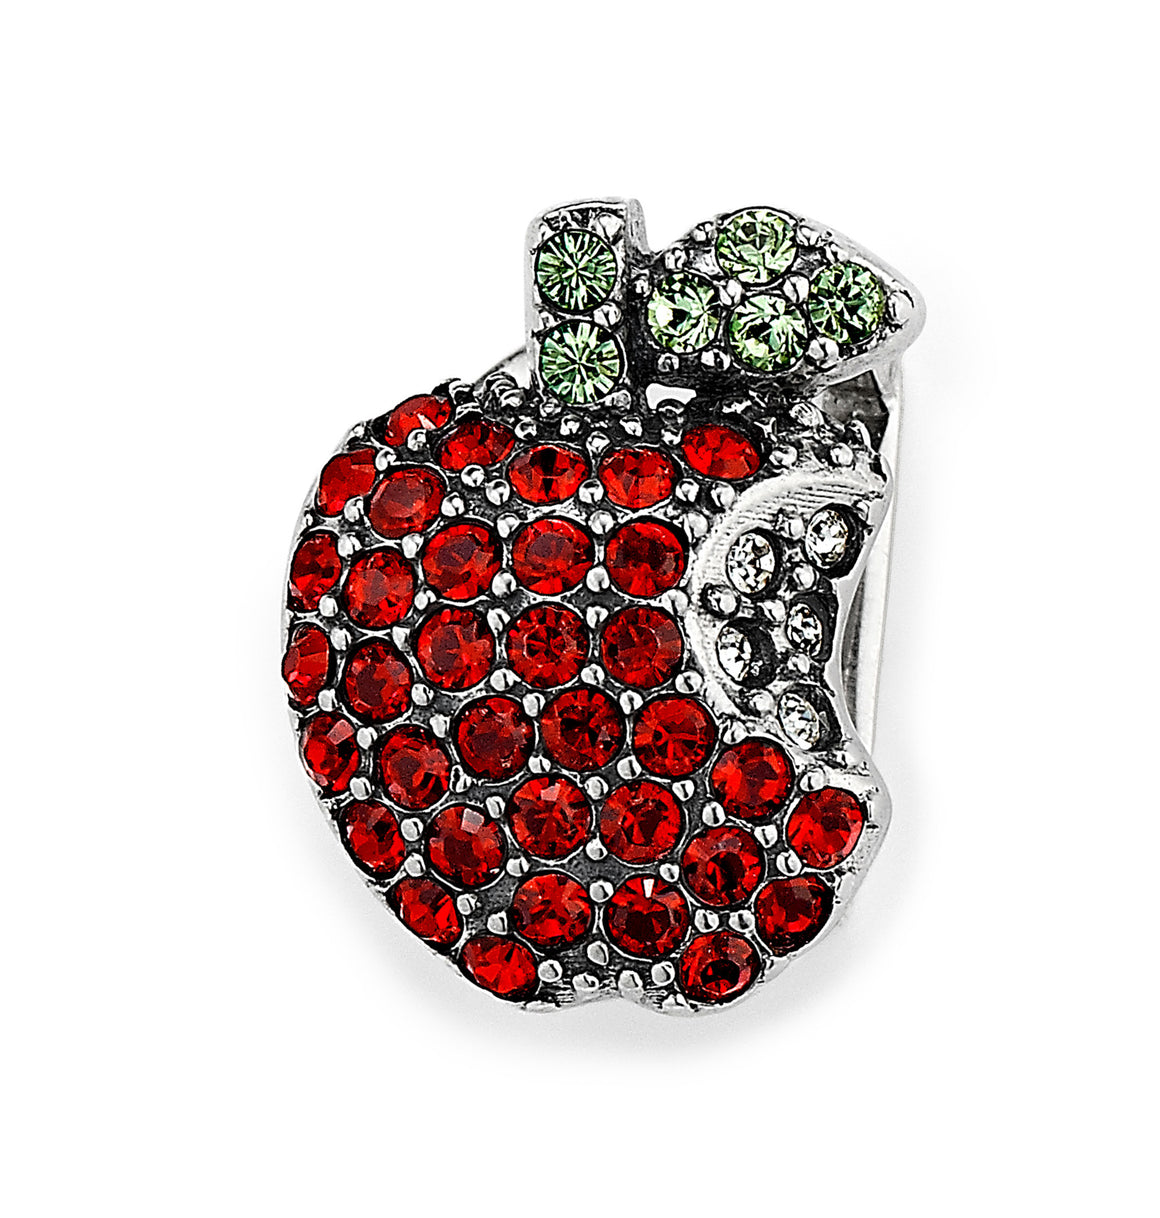 Apple of My Eye Slide Charm from Bonn Bons by Lori Bonn (213341)